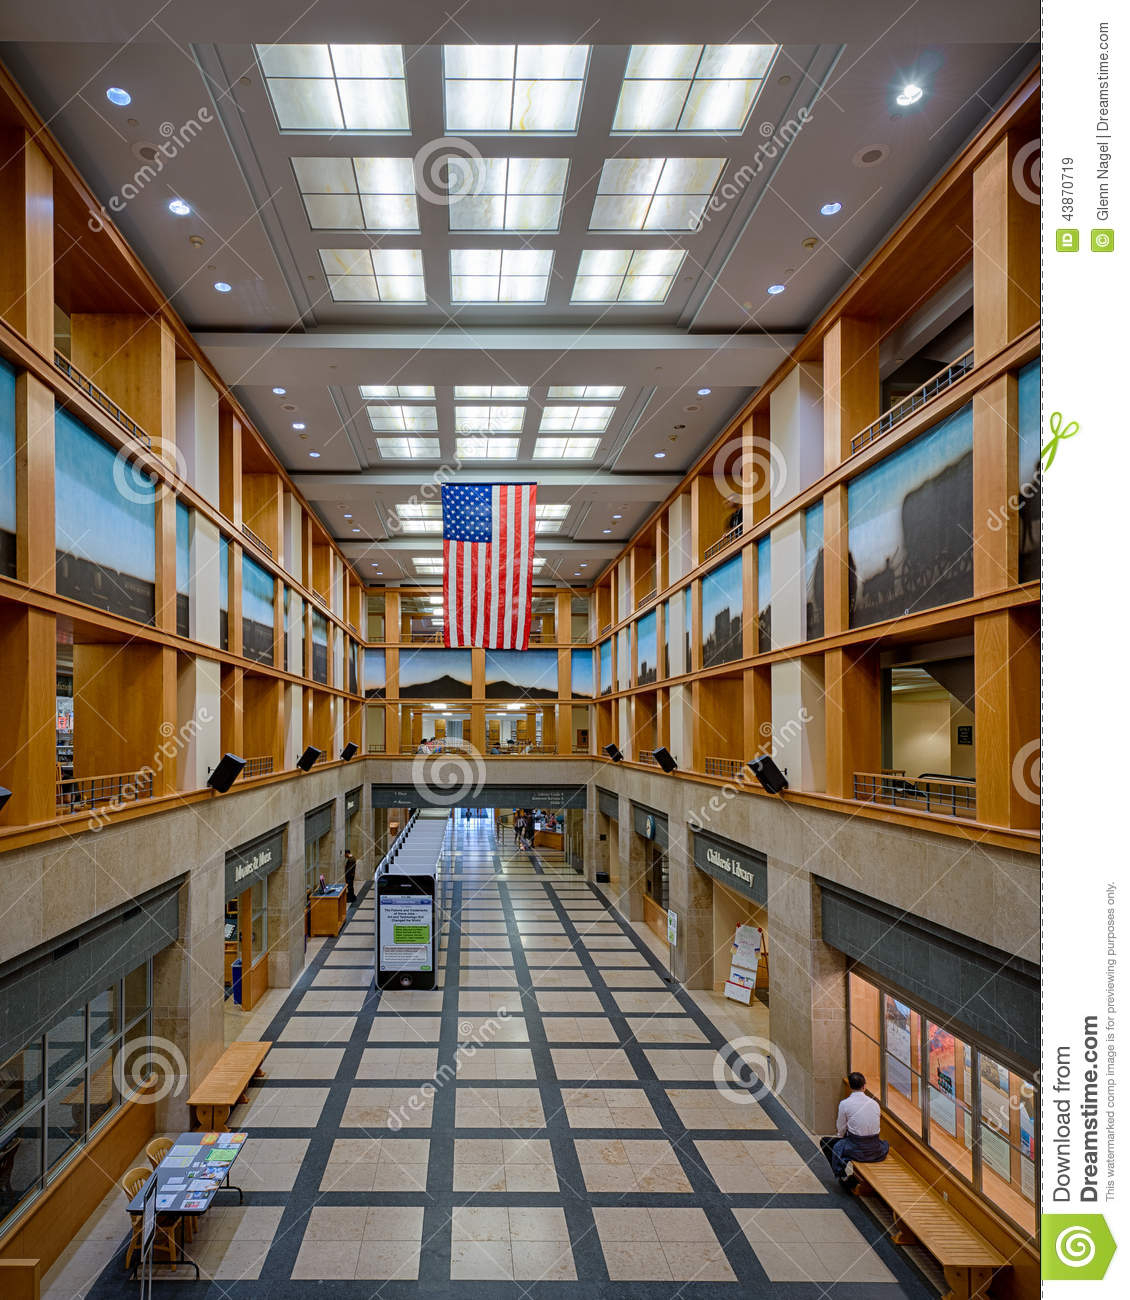 Denver Public Library Editorial Stock Image. Image Of